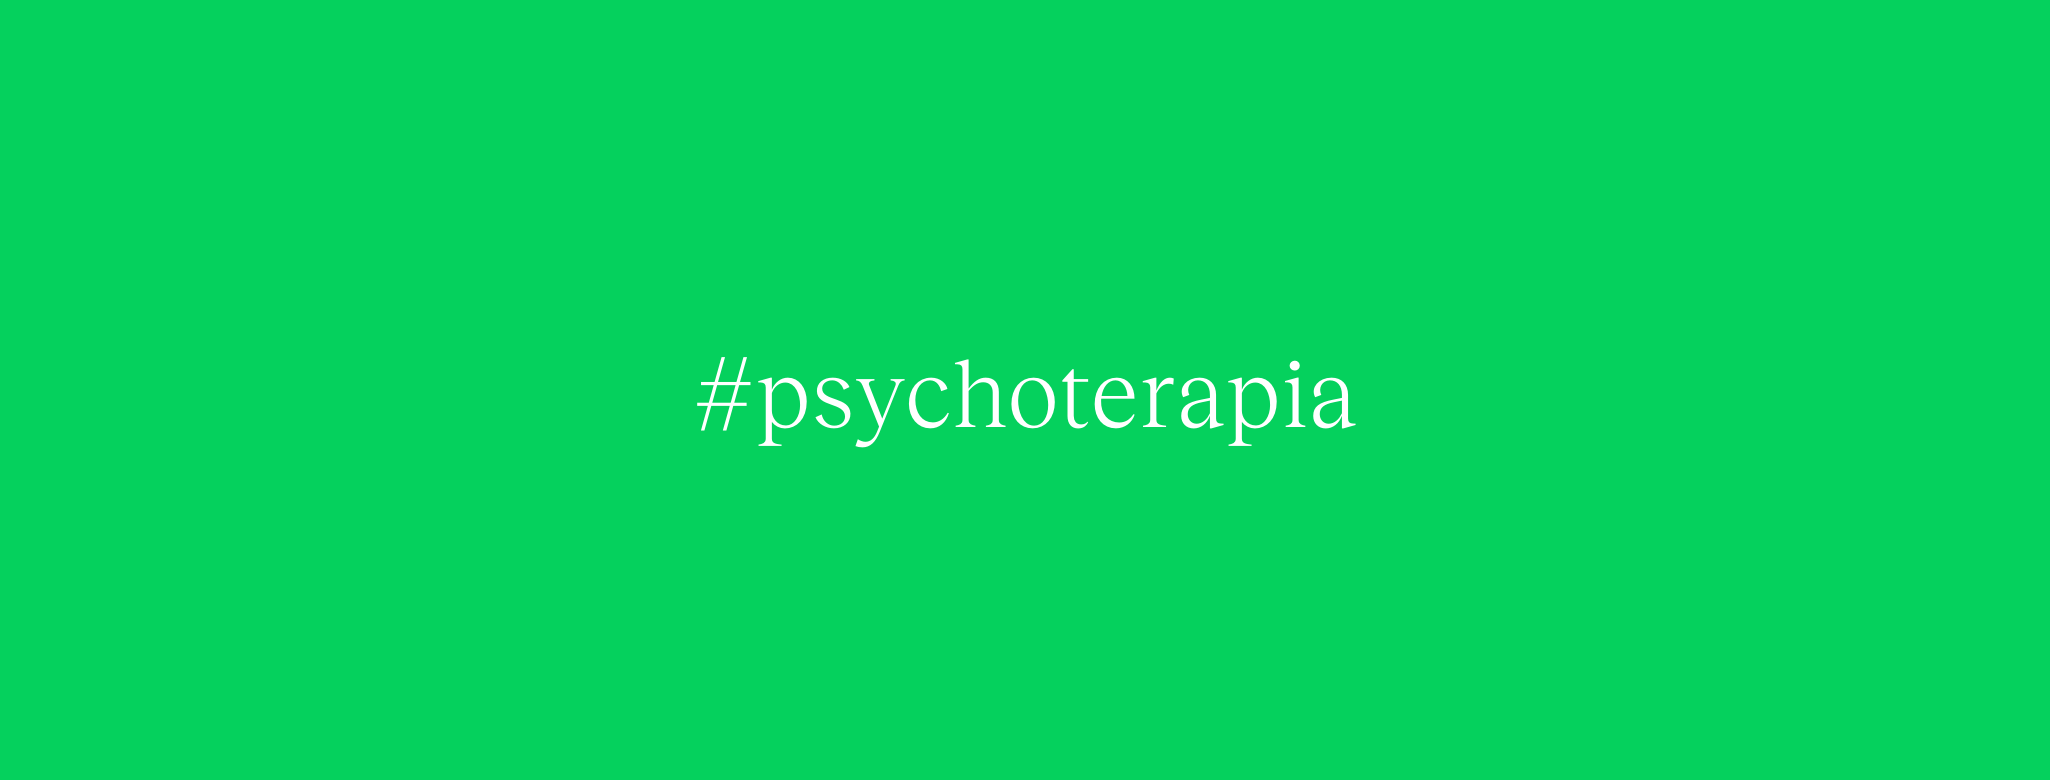 psychoterapia on-line